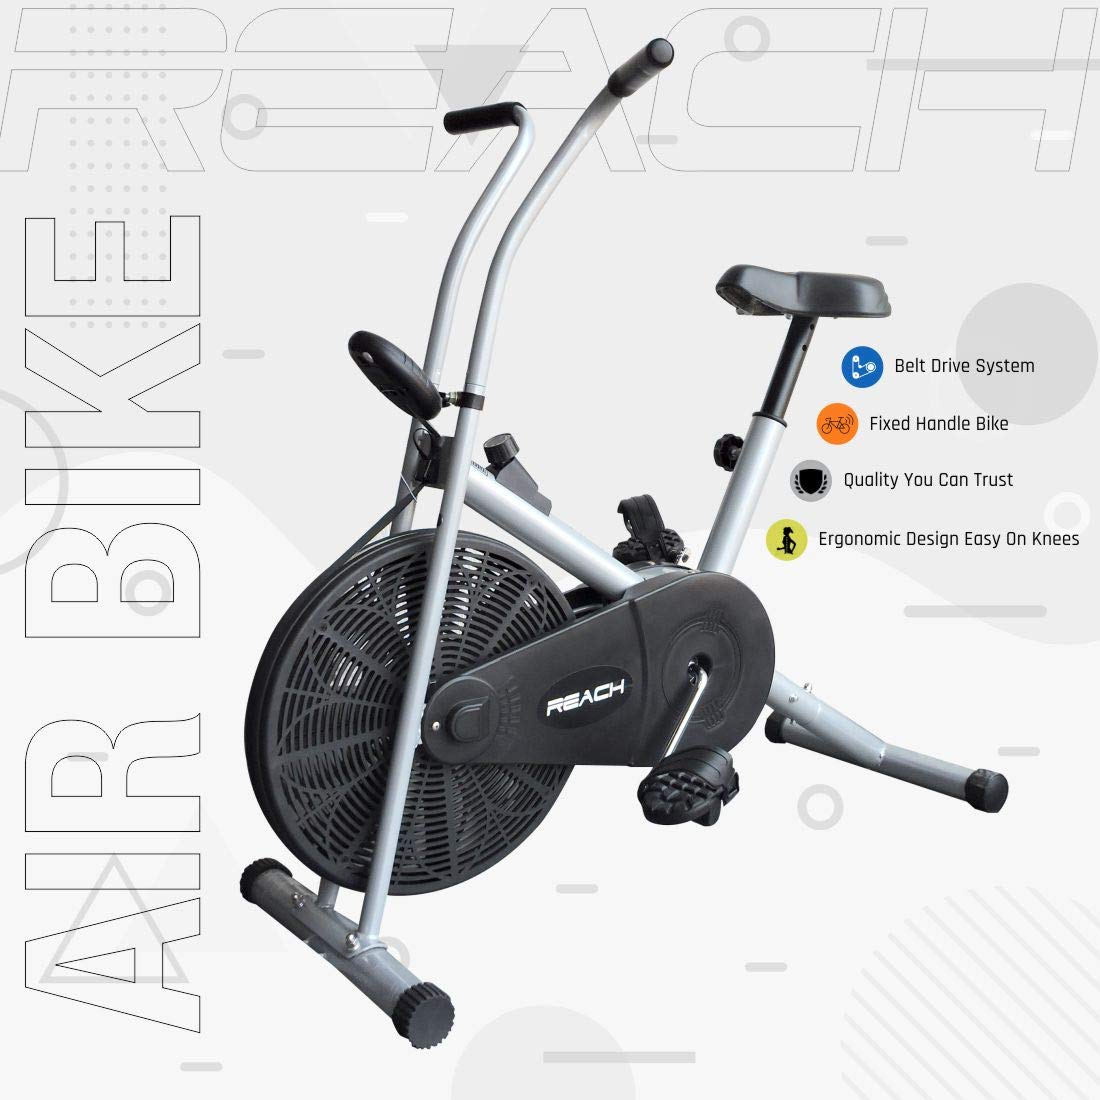 Reach Air Bike Exercise Home Gym Cycle Cardio Fitness Machine for Weight Loss